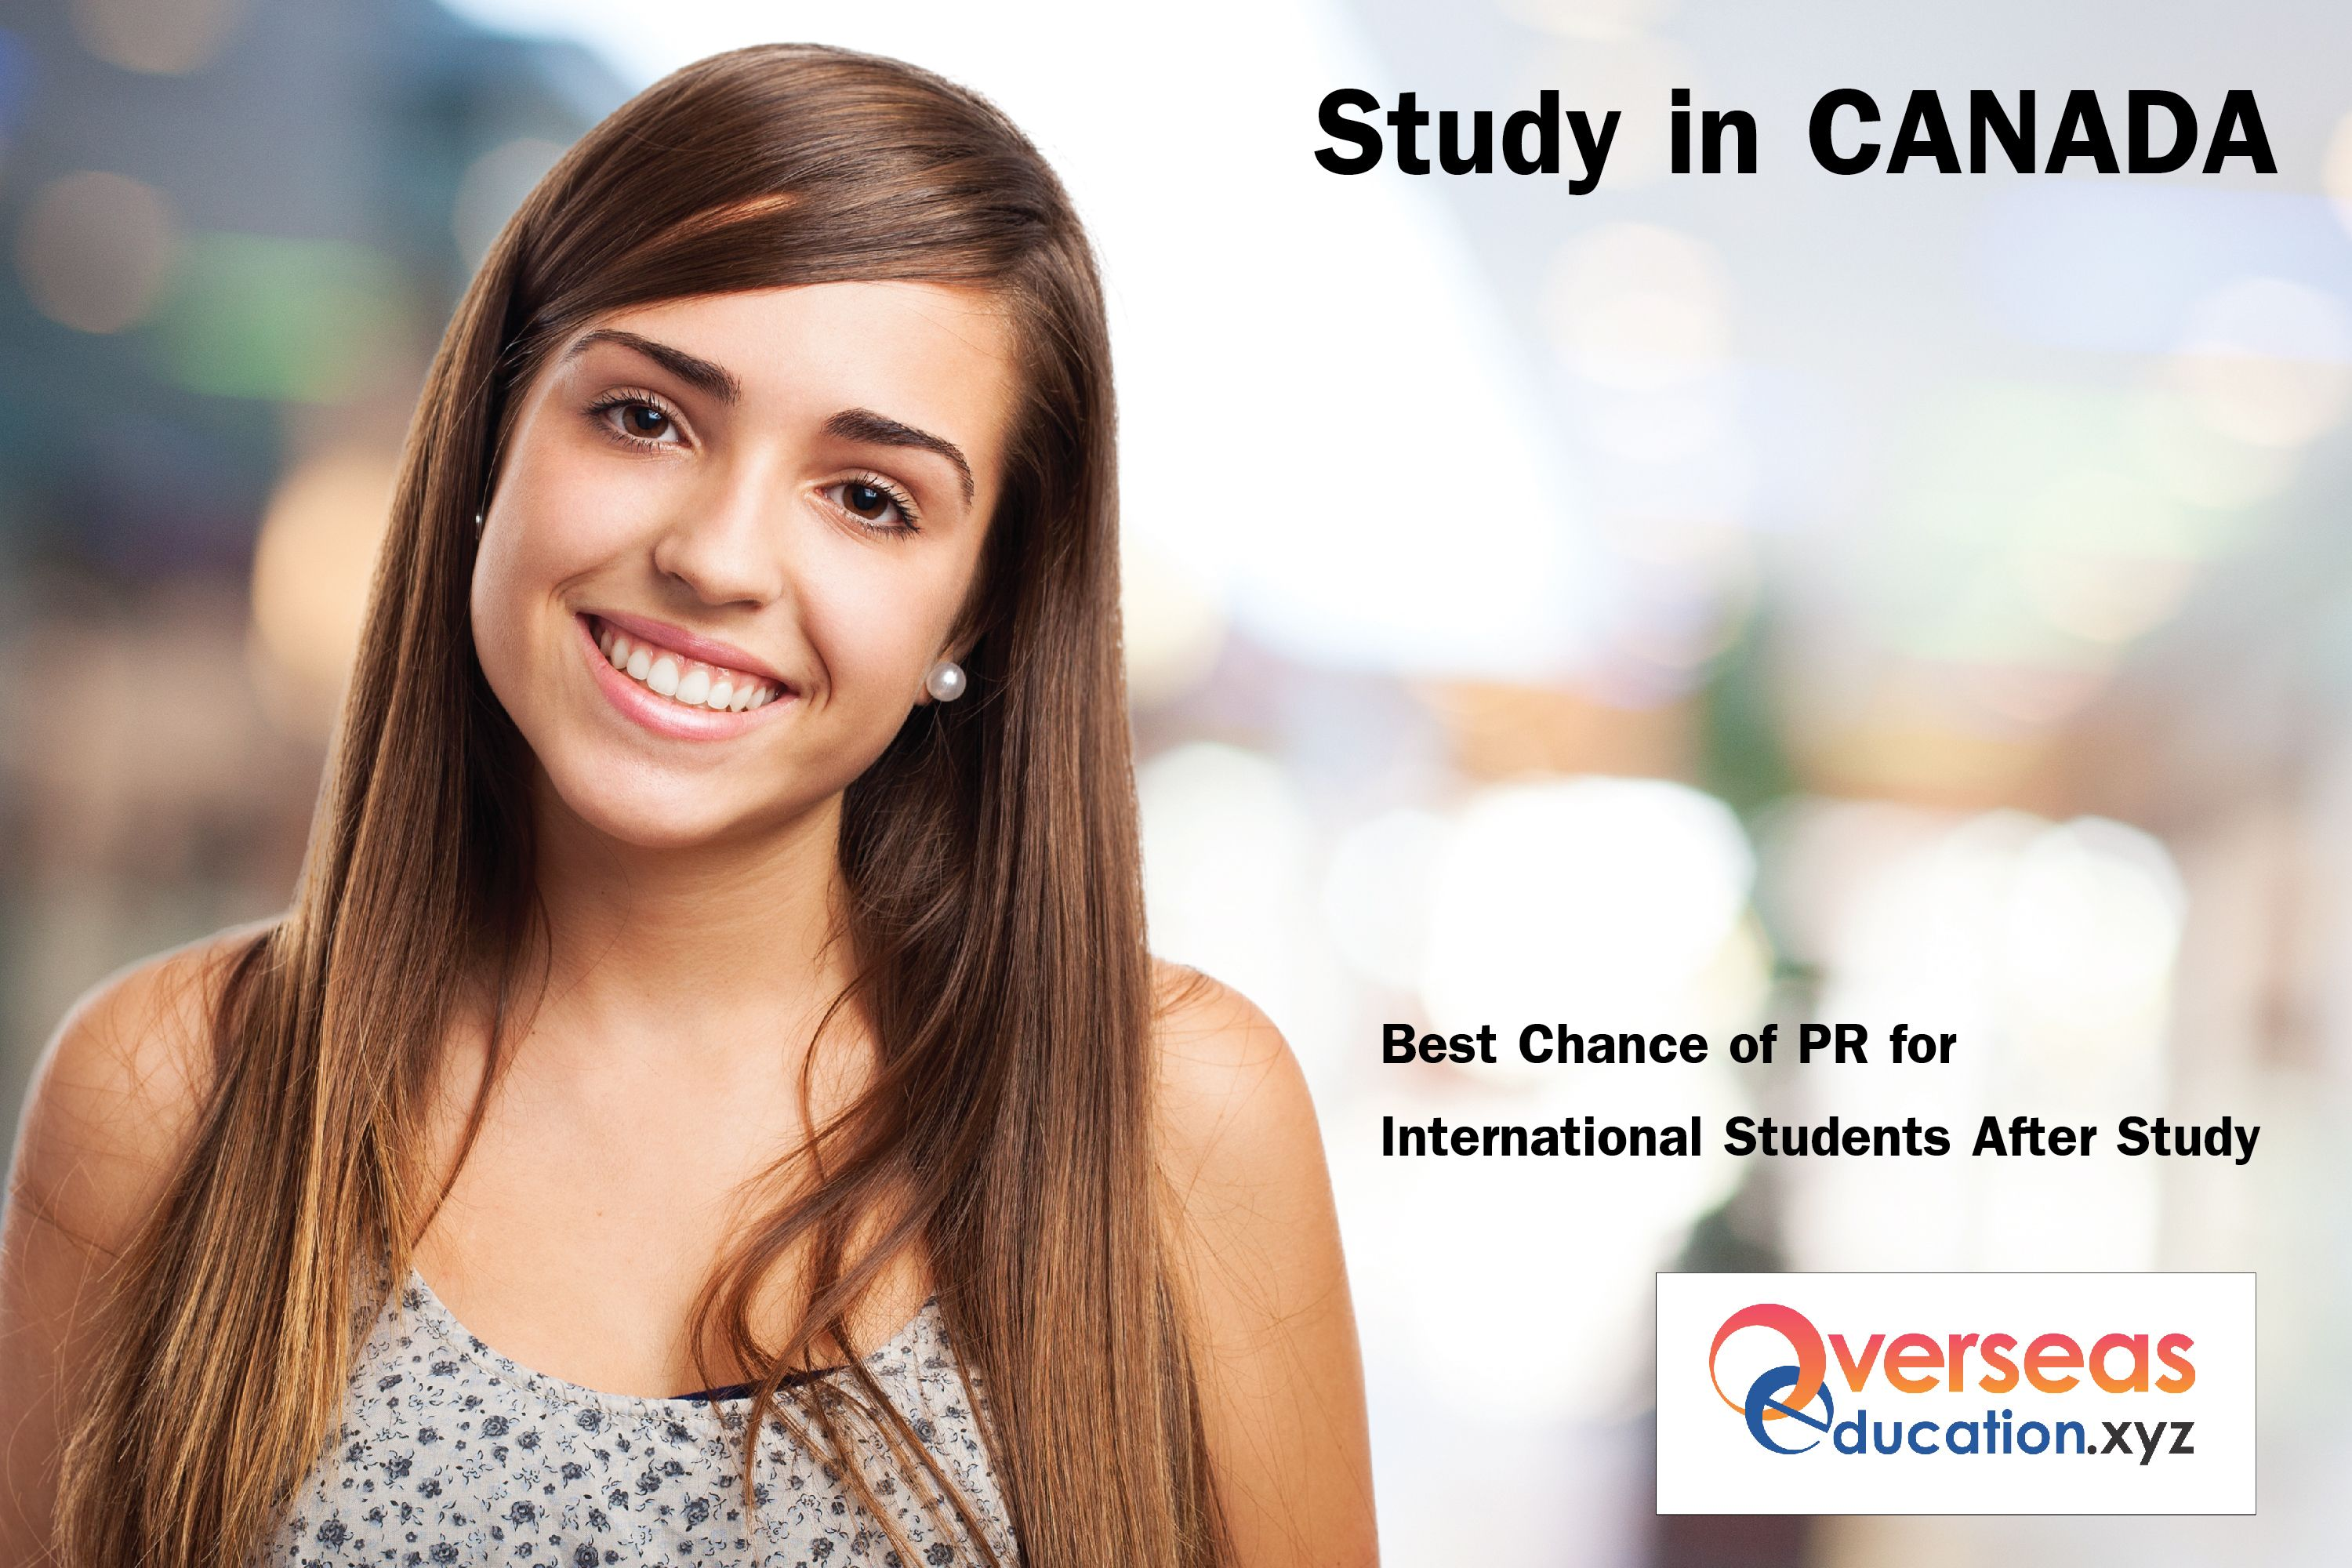 Pin By Overseaseducation On Study In Canada